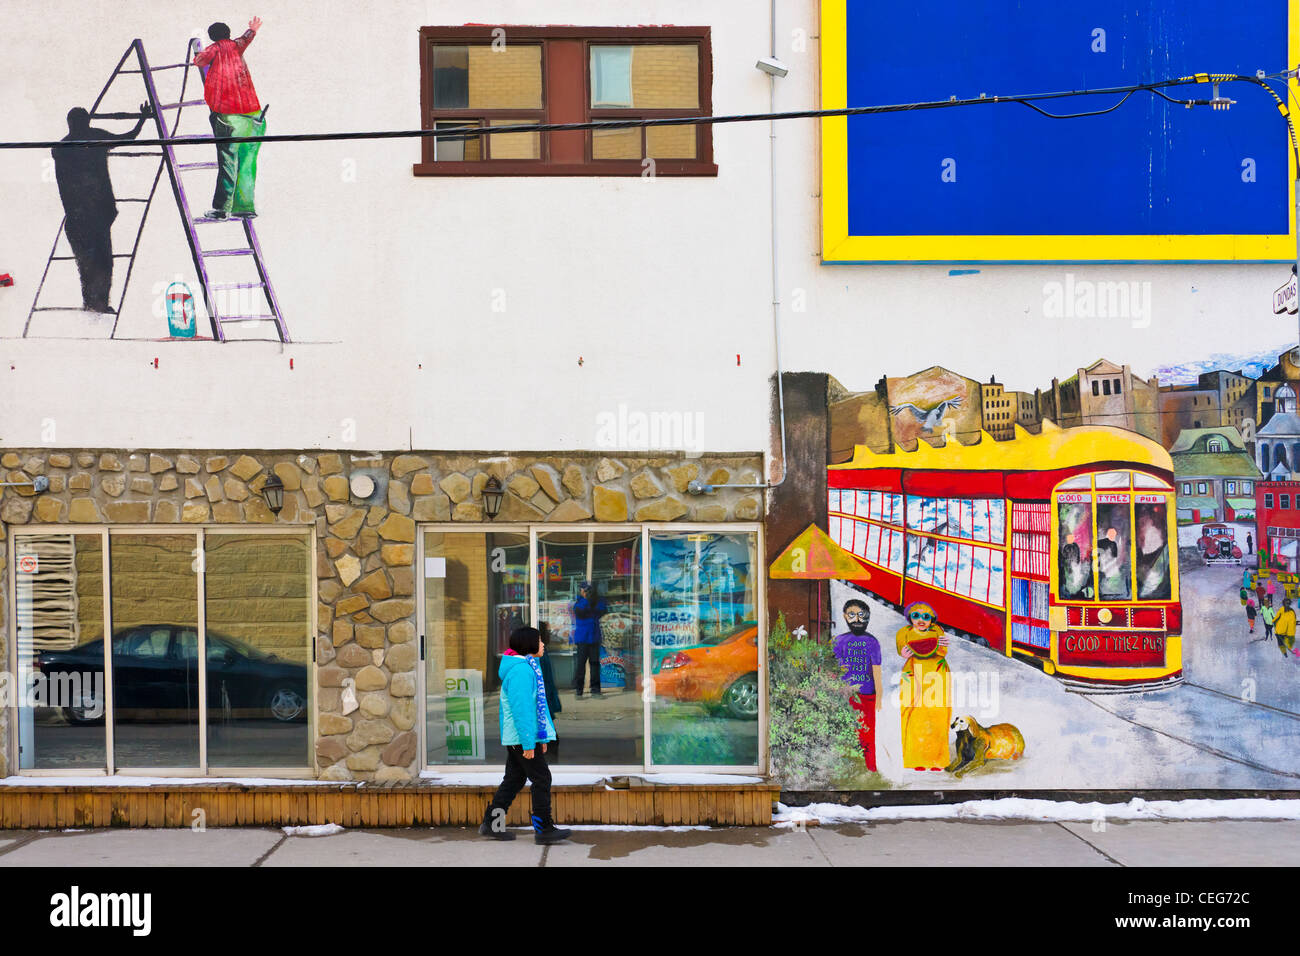 Colorful mural on the street in downtown, Toronto, Canada - Stock Image